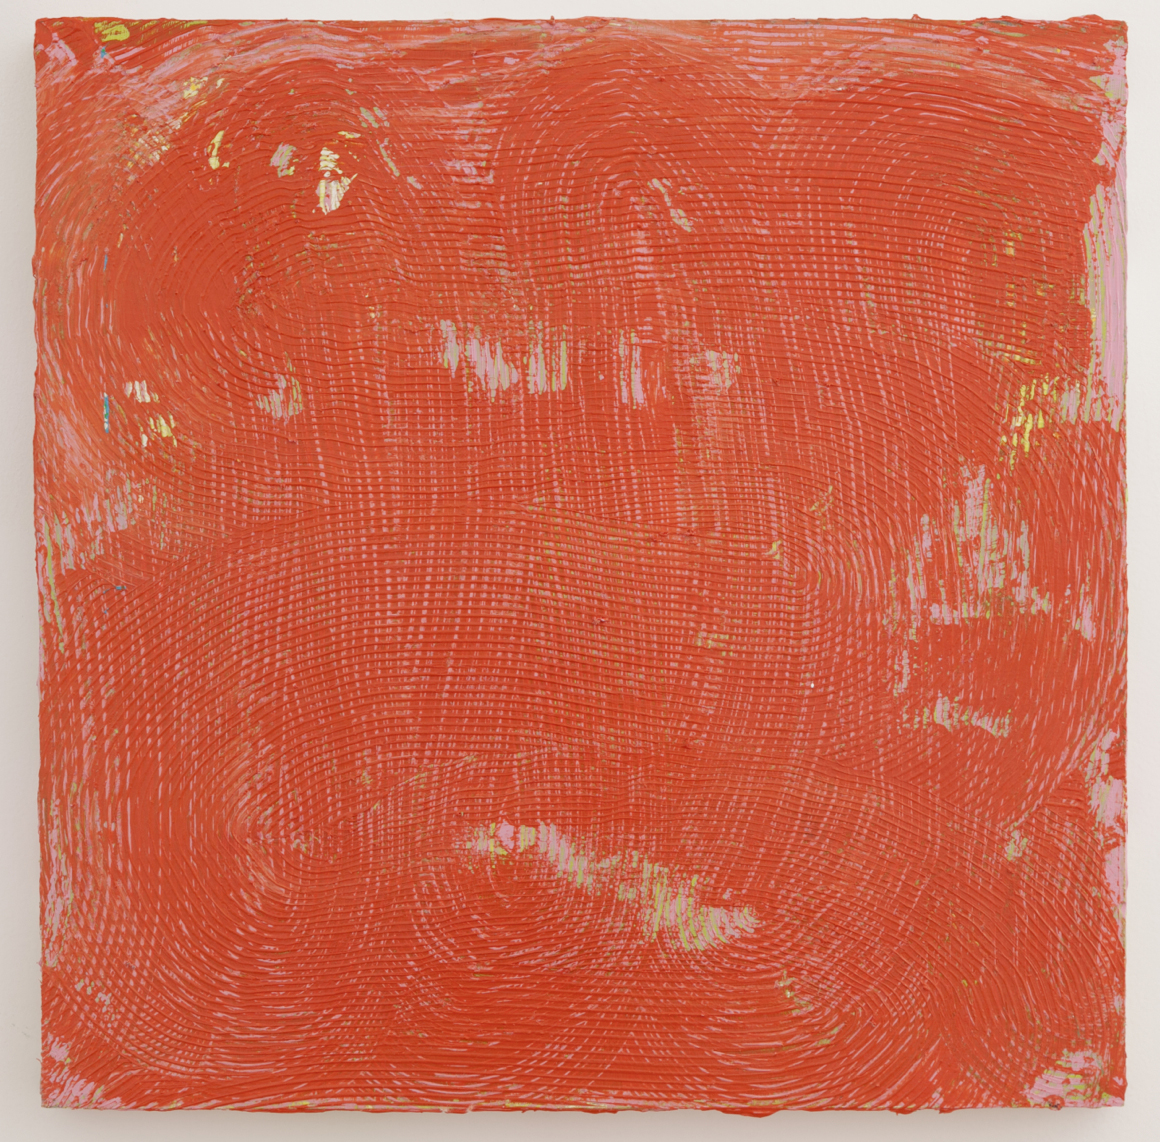 <p><em>Orange</em><span class='media'>acrylic and spray paint on panel</span>24 x 24in<br>2014<br><a class='inquire' href='mailto:info@gildargallery.com?subject=Artwork Inquiry ABAT0004&body=I am interested in finding out more about Orange by Adam Bateman'>Inquire</a></p>